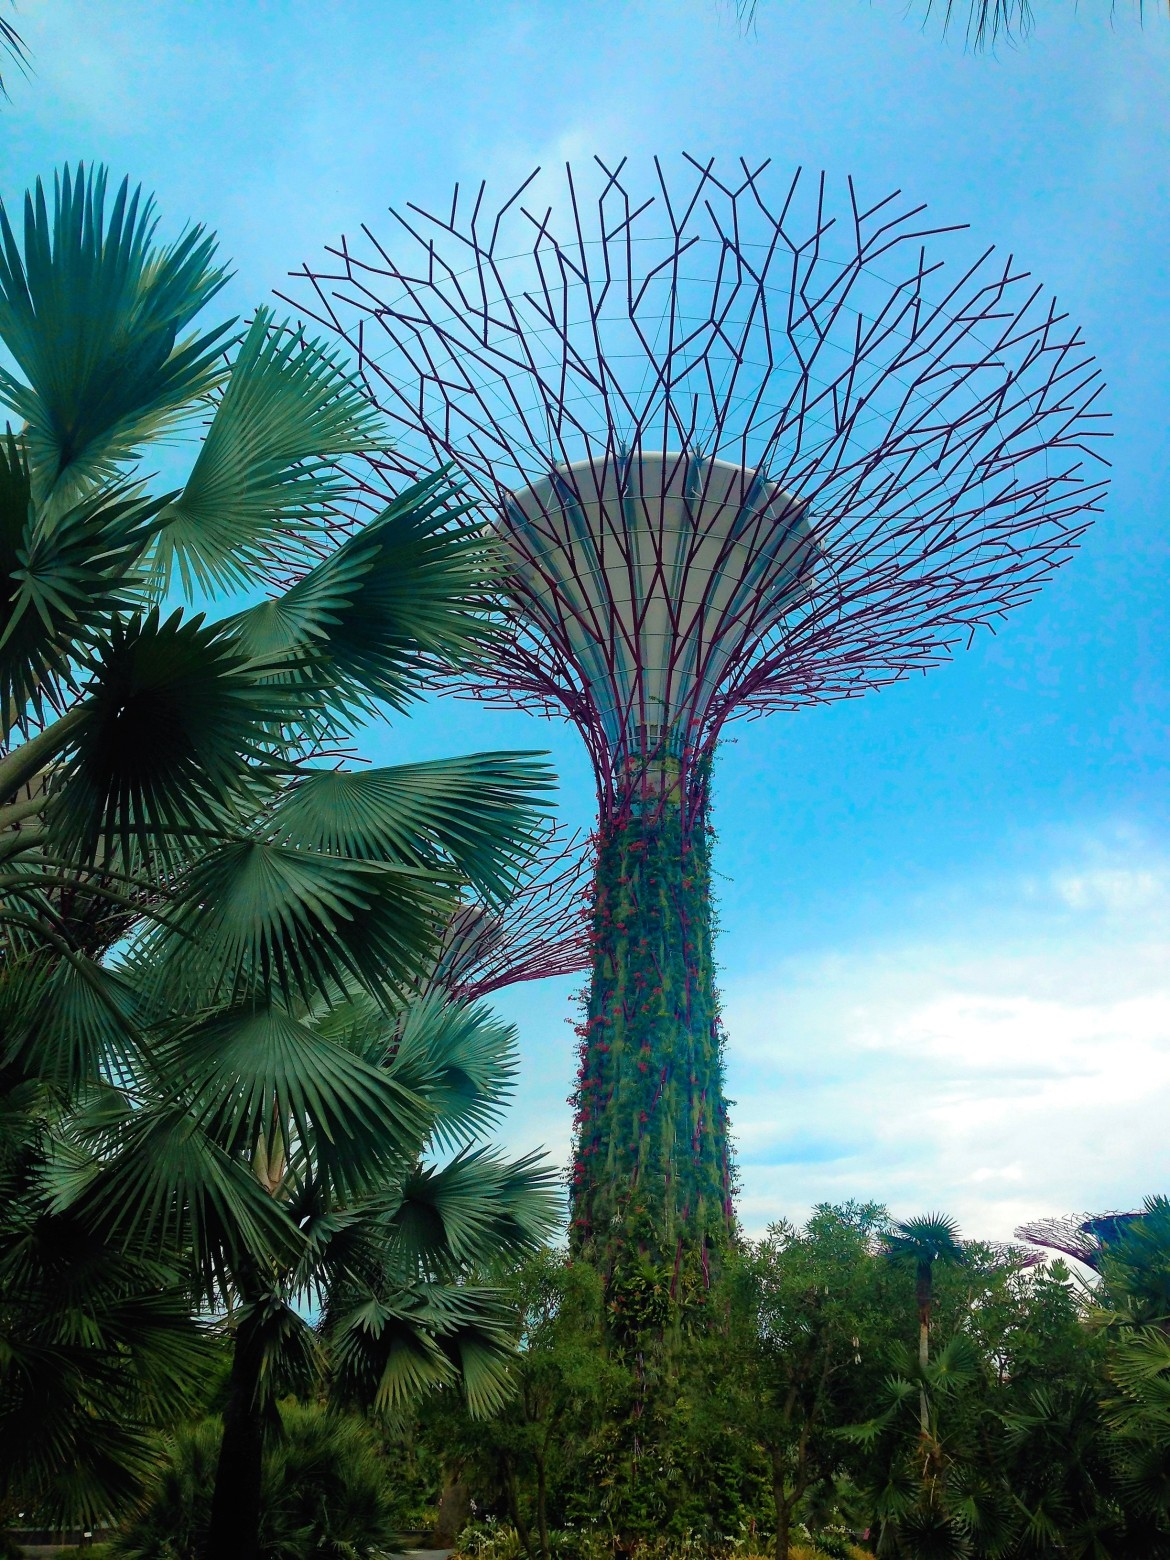 Singapour - Gardens by the bay (3)